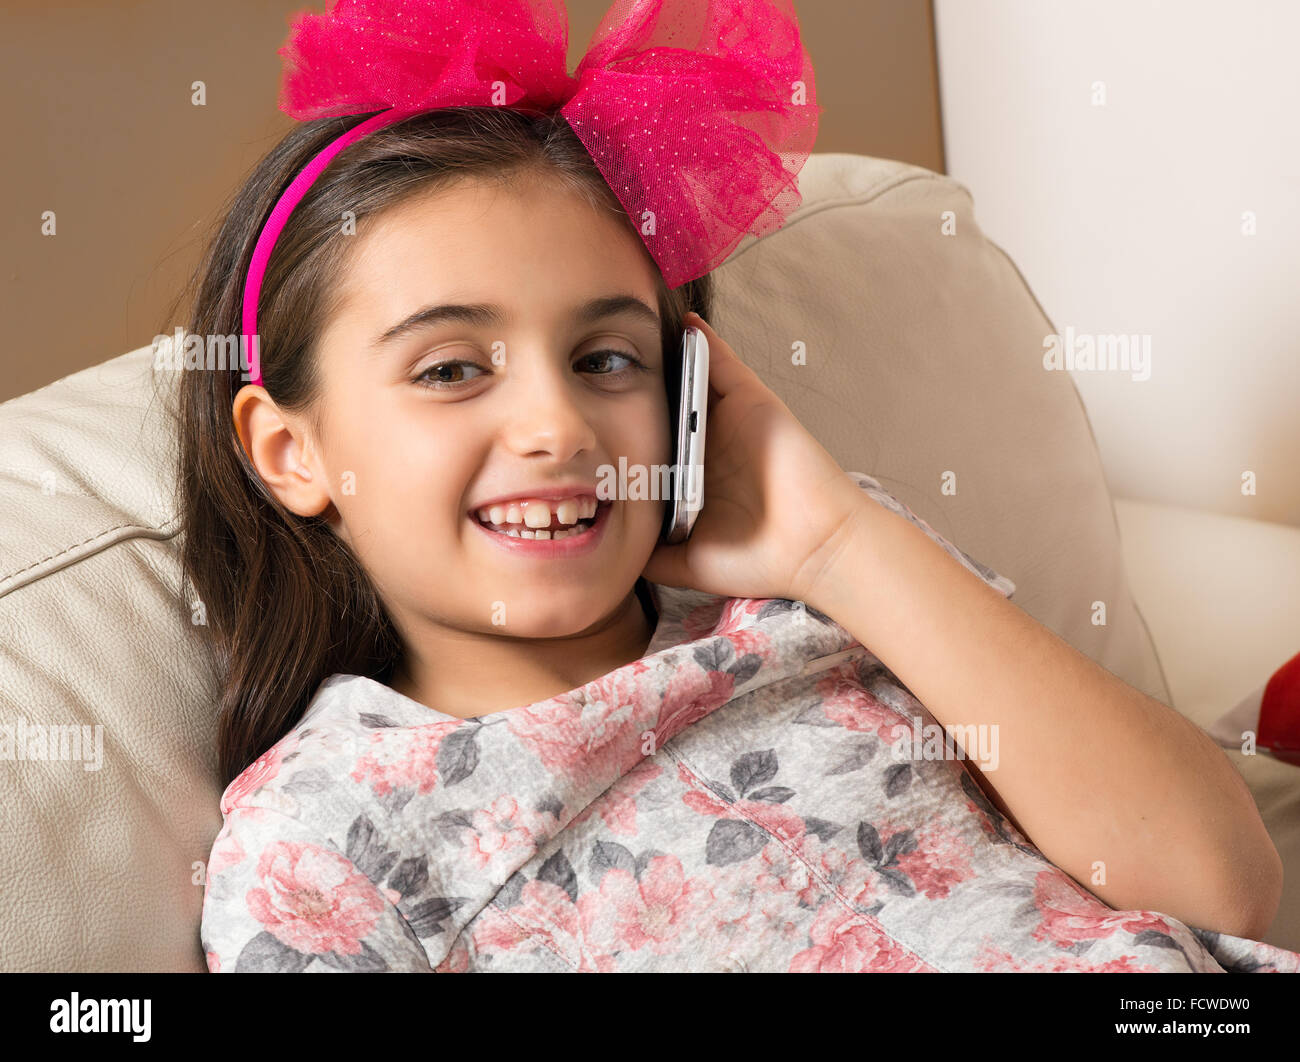 pretty little girl with a lovely happy smile and a bright. Black Bedroom Furniture Sets. Home Design Ideas